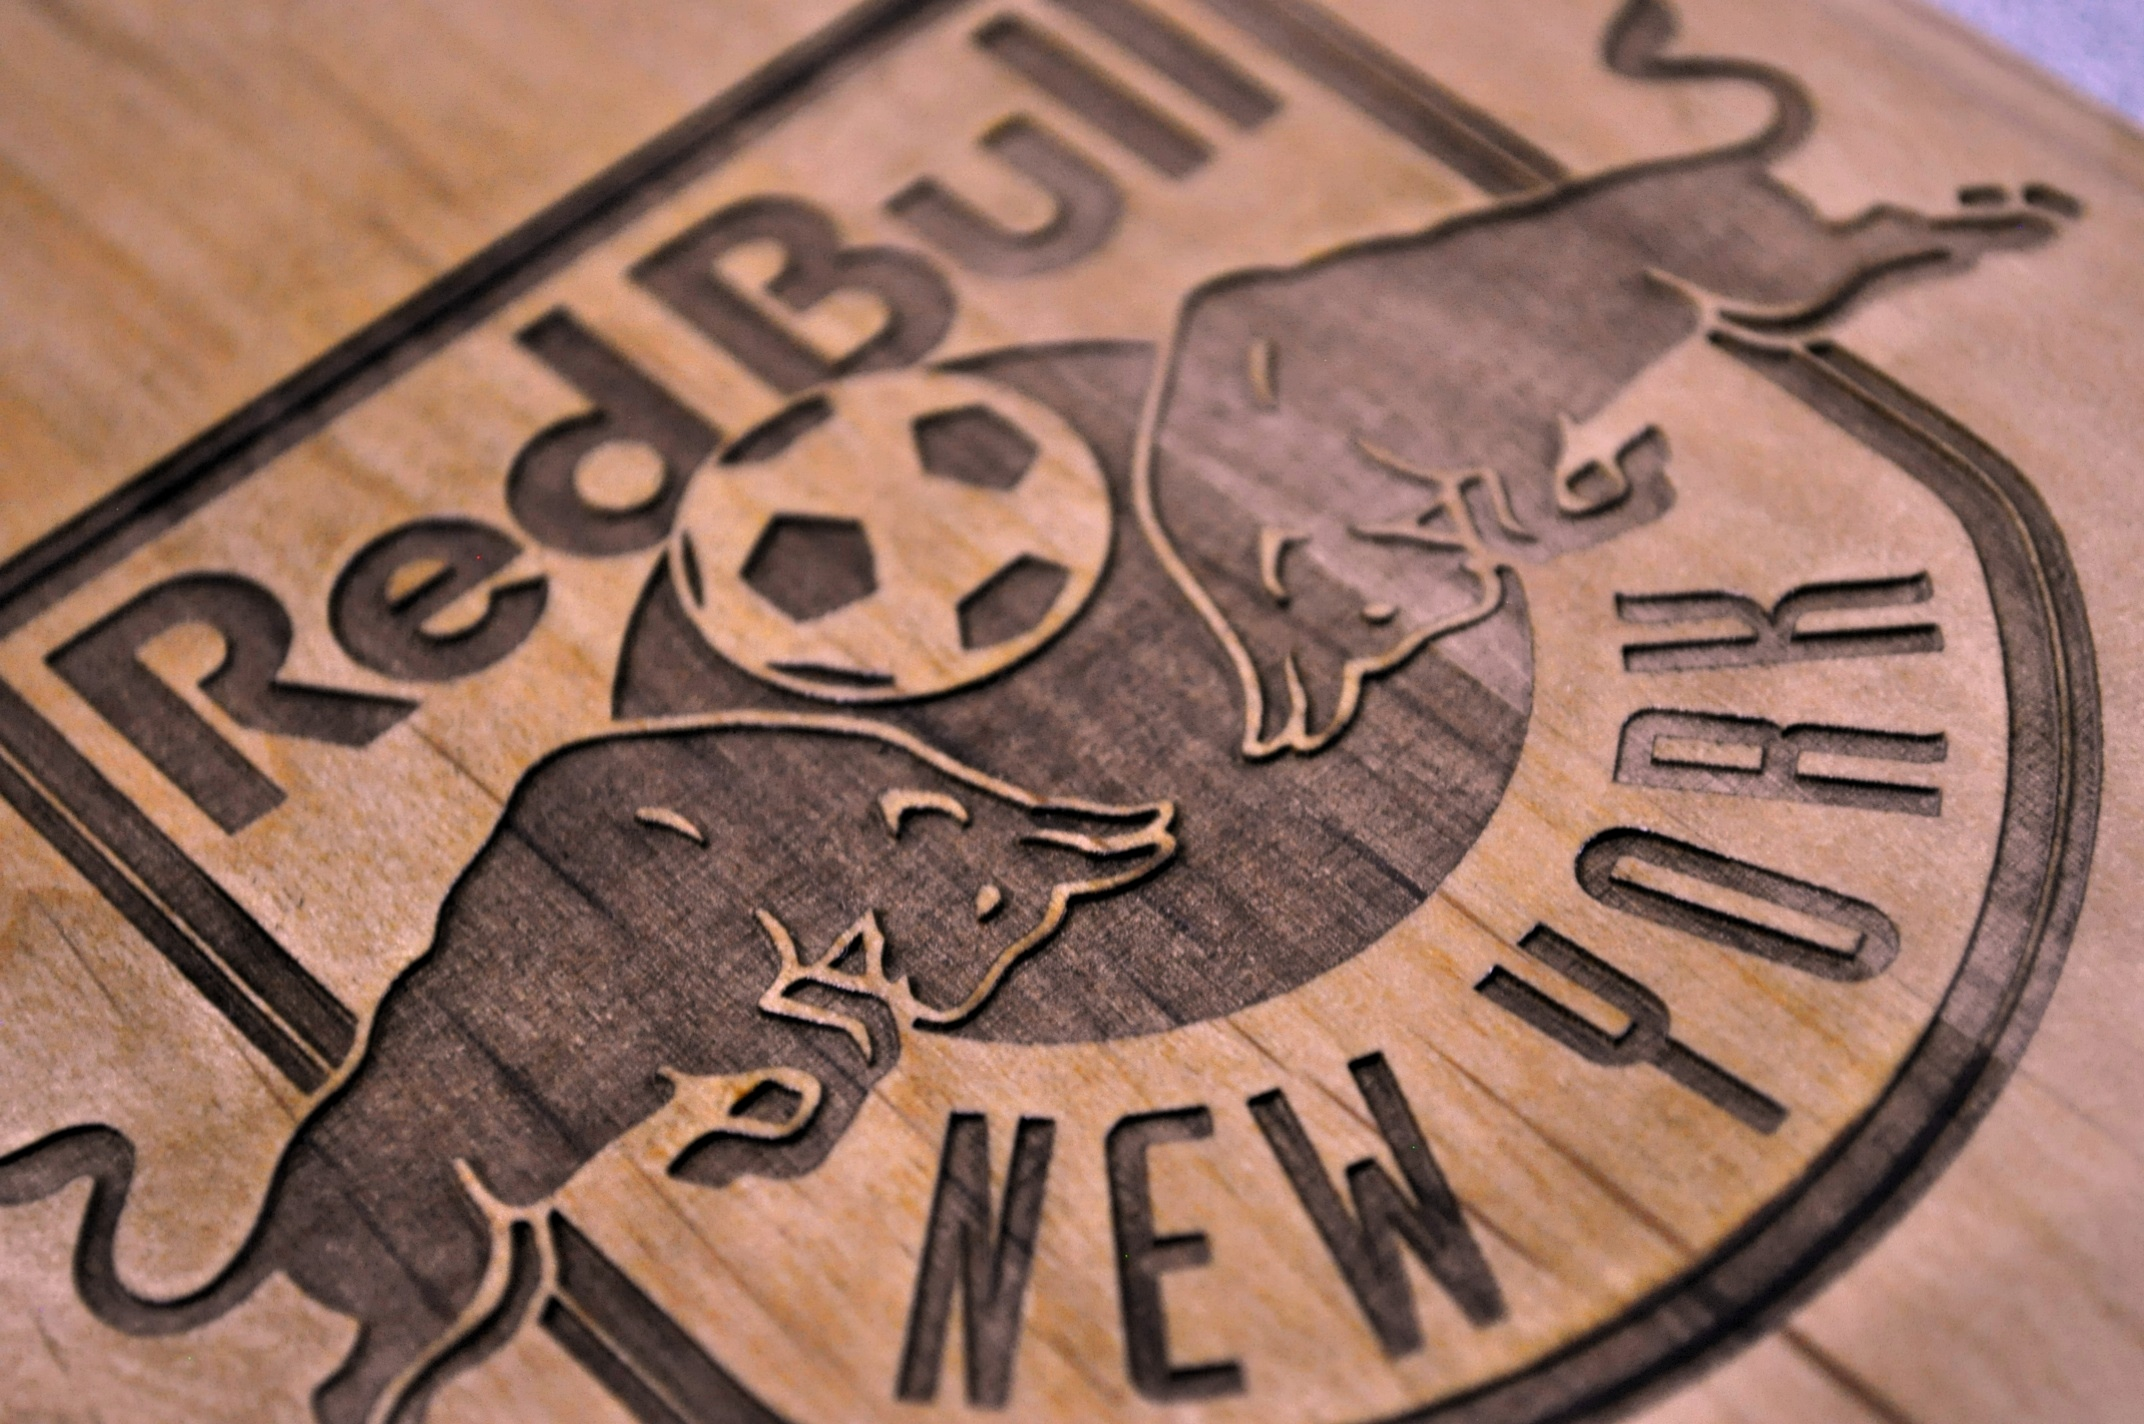 This is an example of the type of onsite Engraving Reek Creations can do.